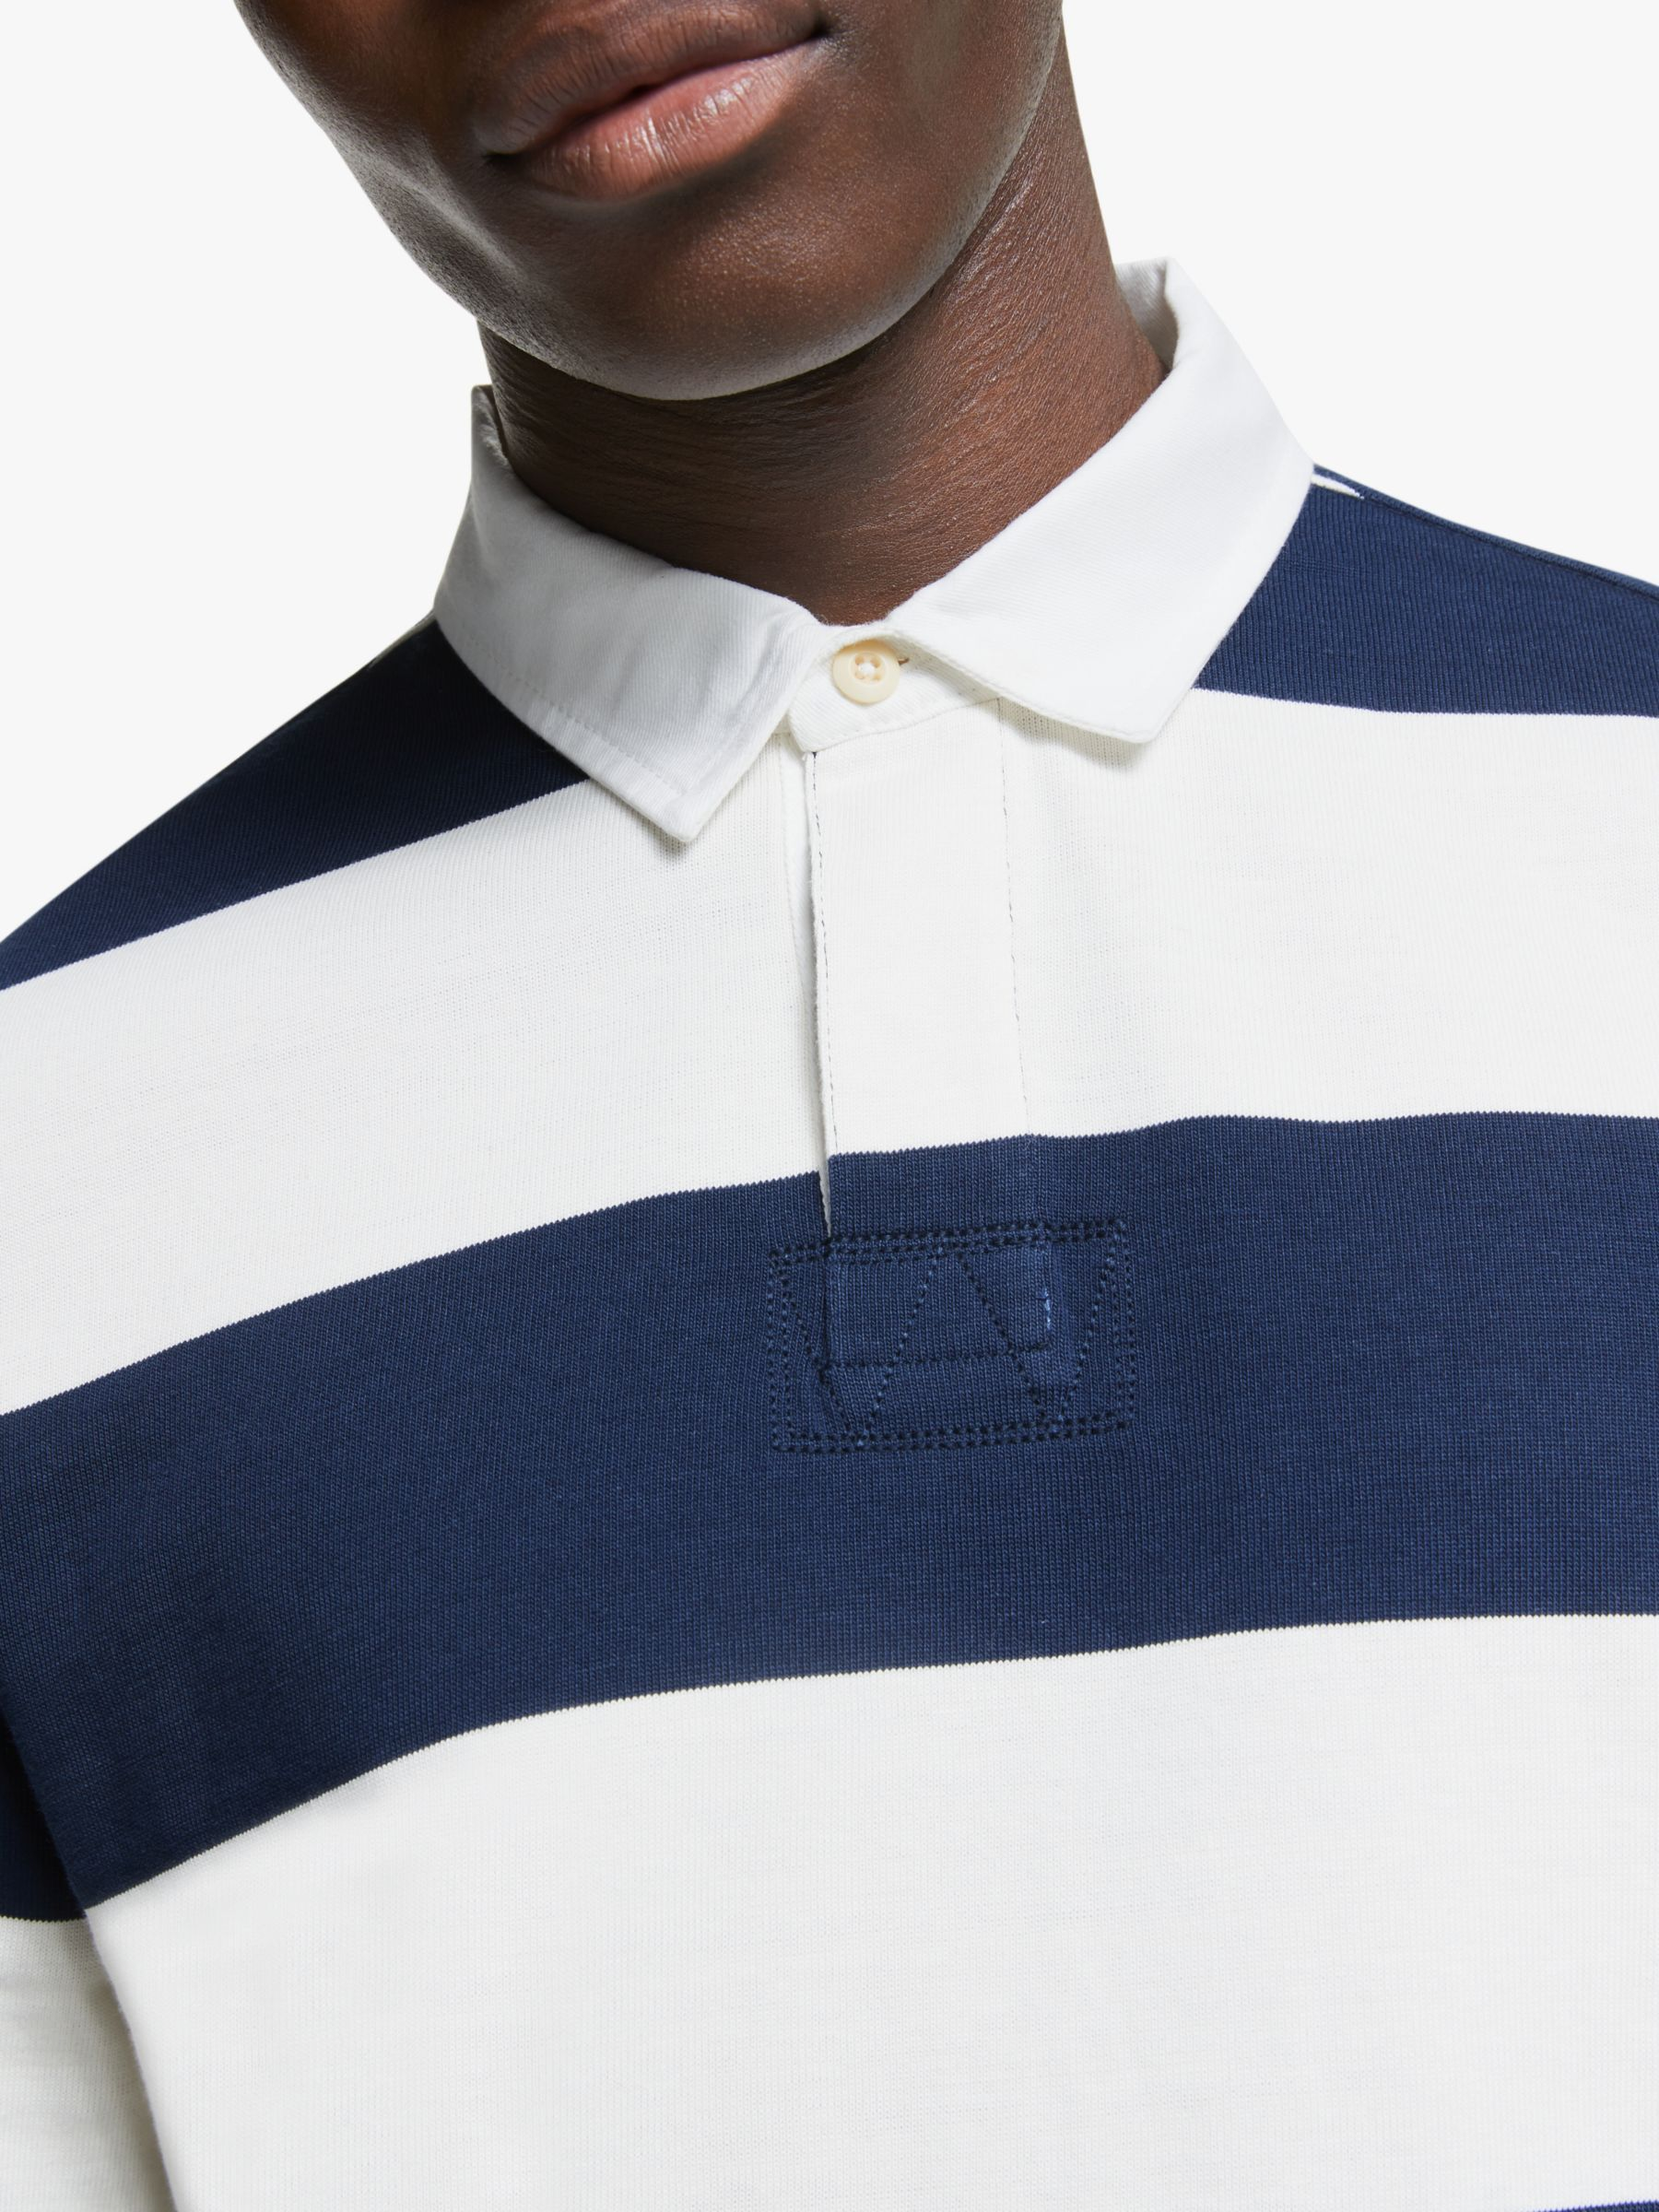 Partners Wide Stripe Rugby Top Navy White Wide Stripes Navy White Preppy Style